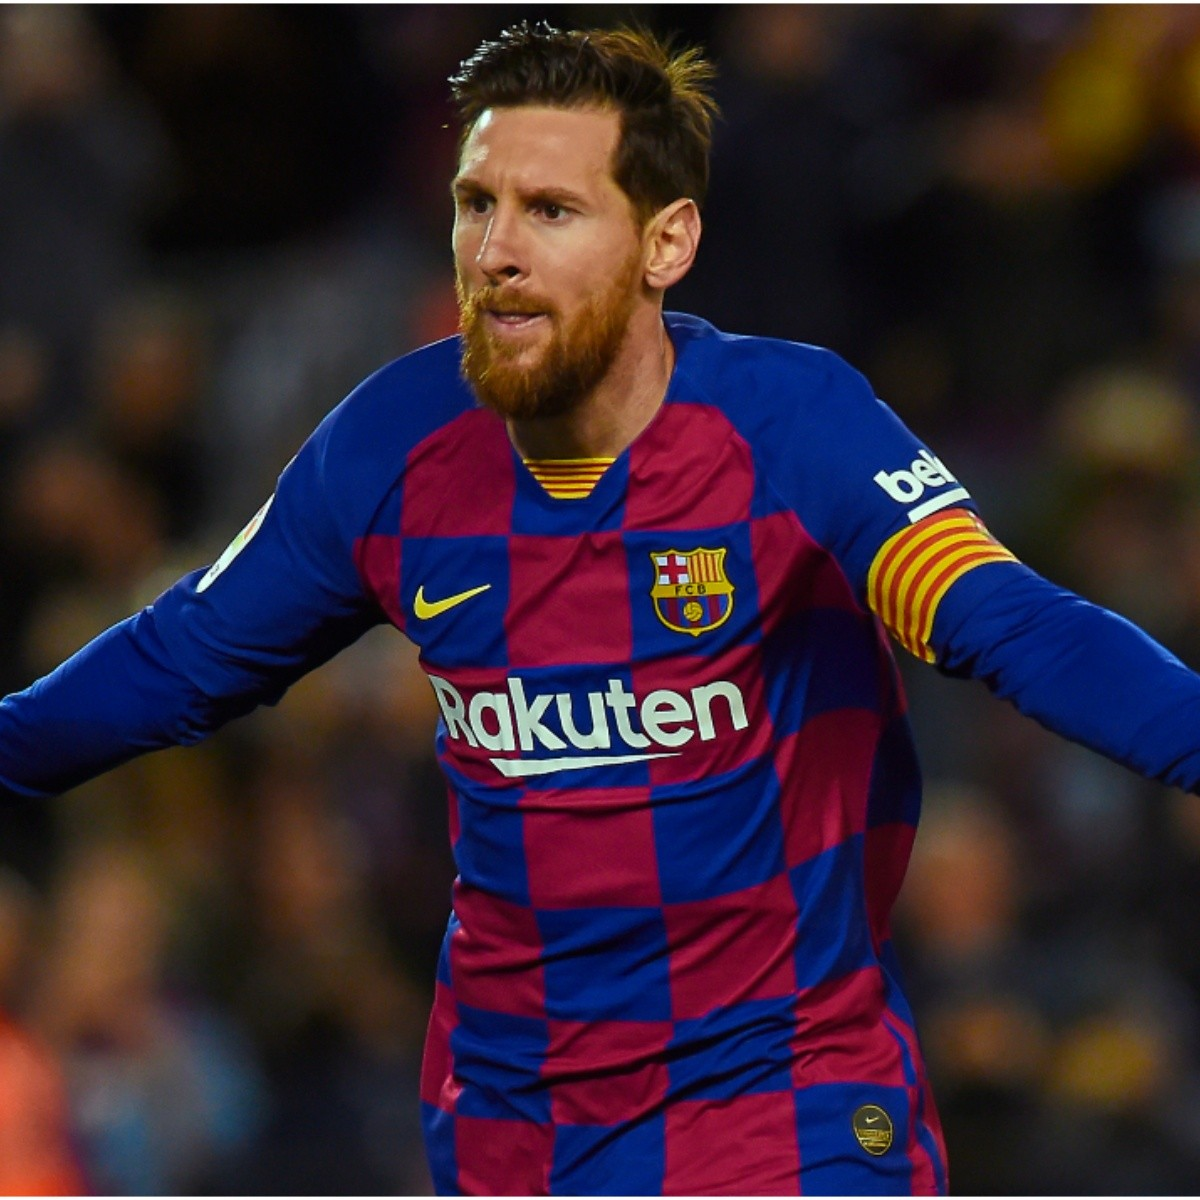 Messi Leaves Barcelona Funny Memes And Reactions Bolavip Us